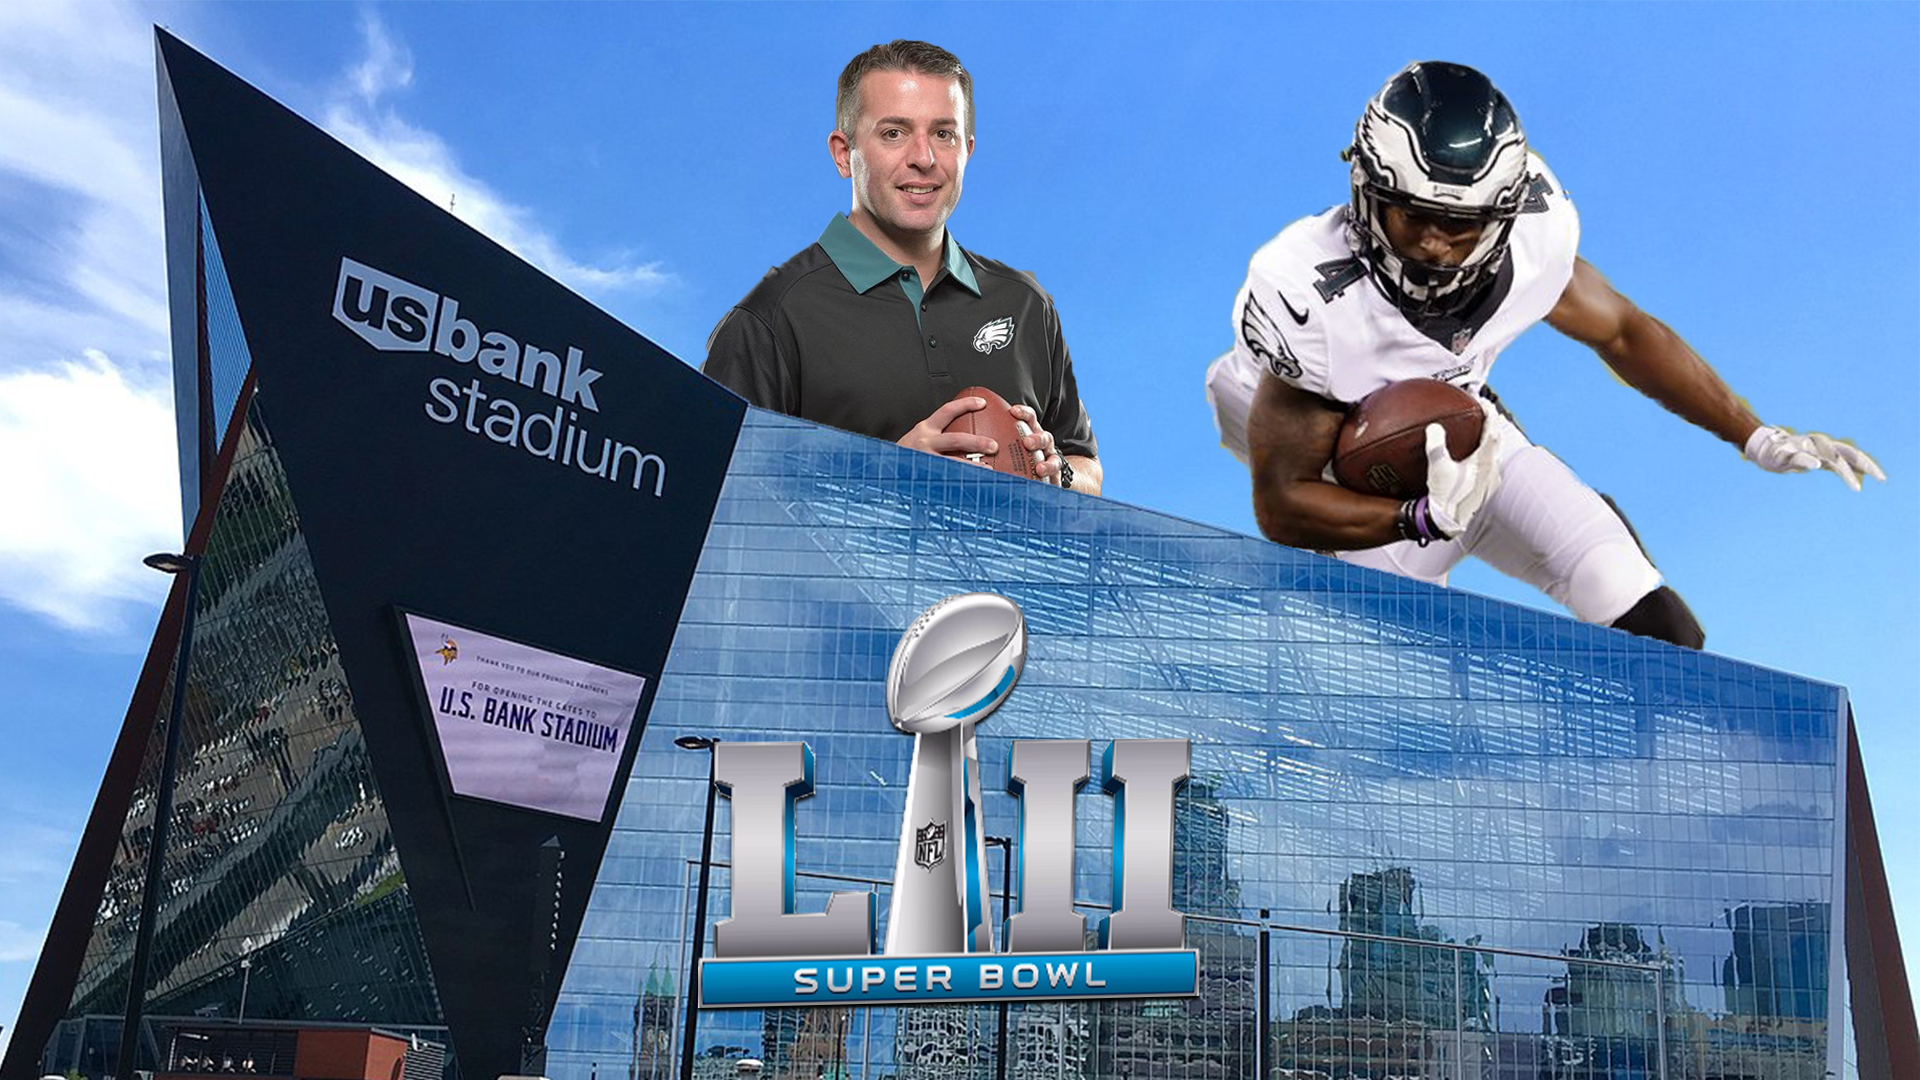 Football: Former Dukes Davis and DeFilippo Advance to Super Bowl LII with Eagles)